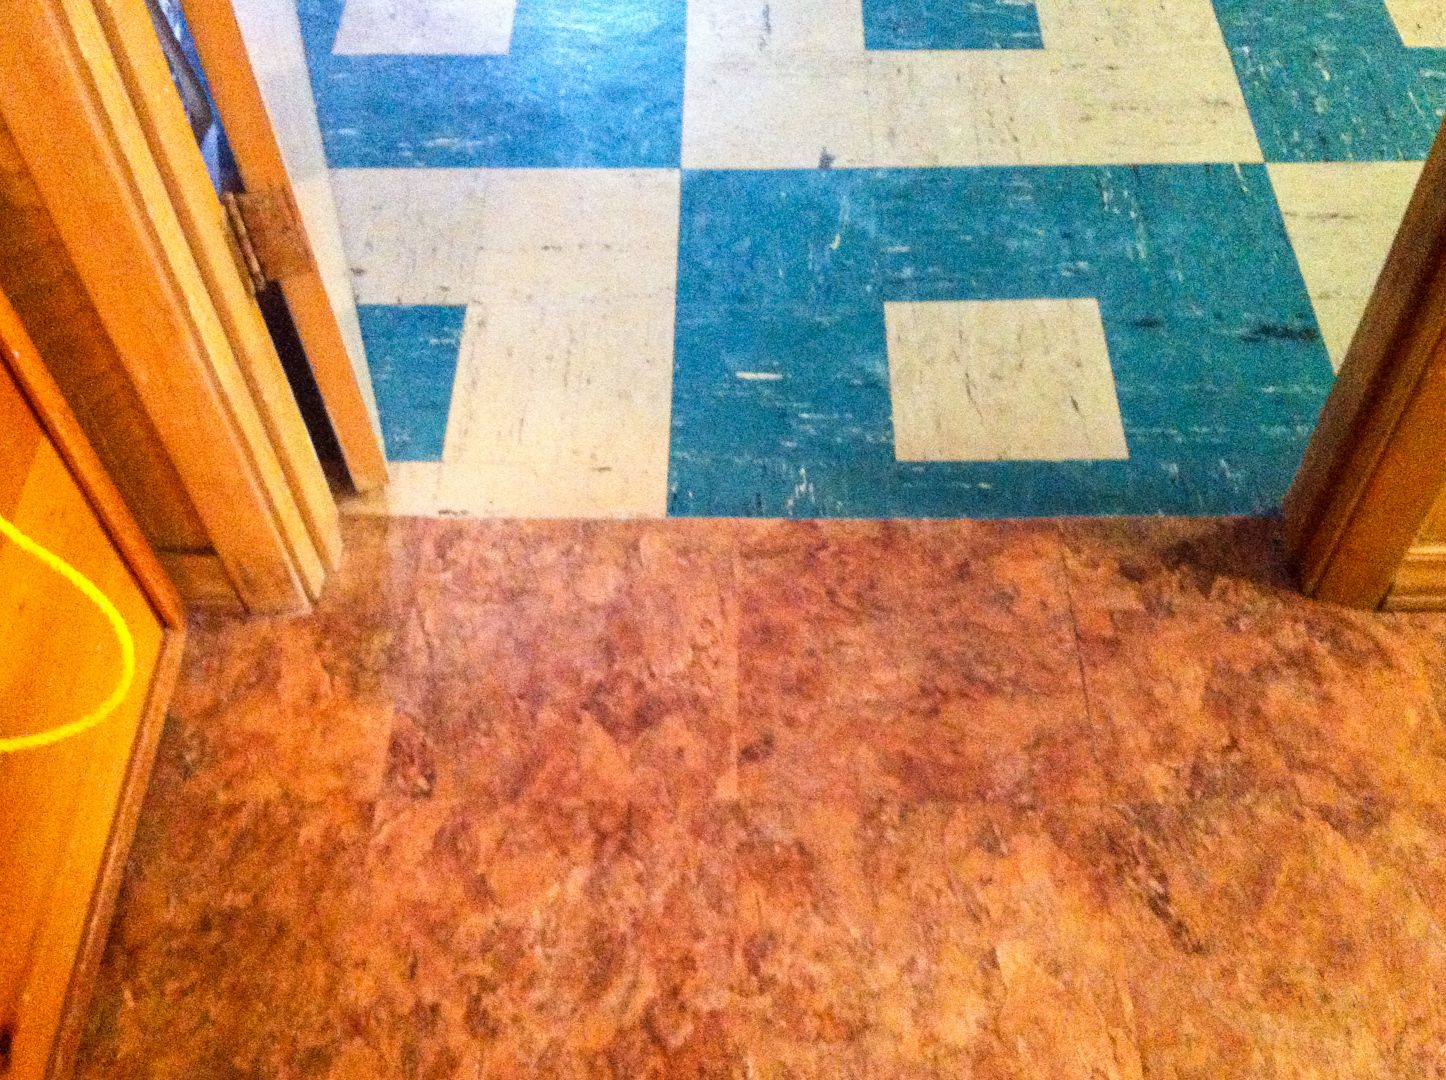 2 Sf Encapsulation Of 8 X 8 Asbestos Tile In A 50 S Ranch With 12 X 12 Vinyl Tile Glued On Top Asbestos Tile Vinyl Tile Contemporary Rug